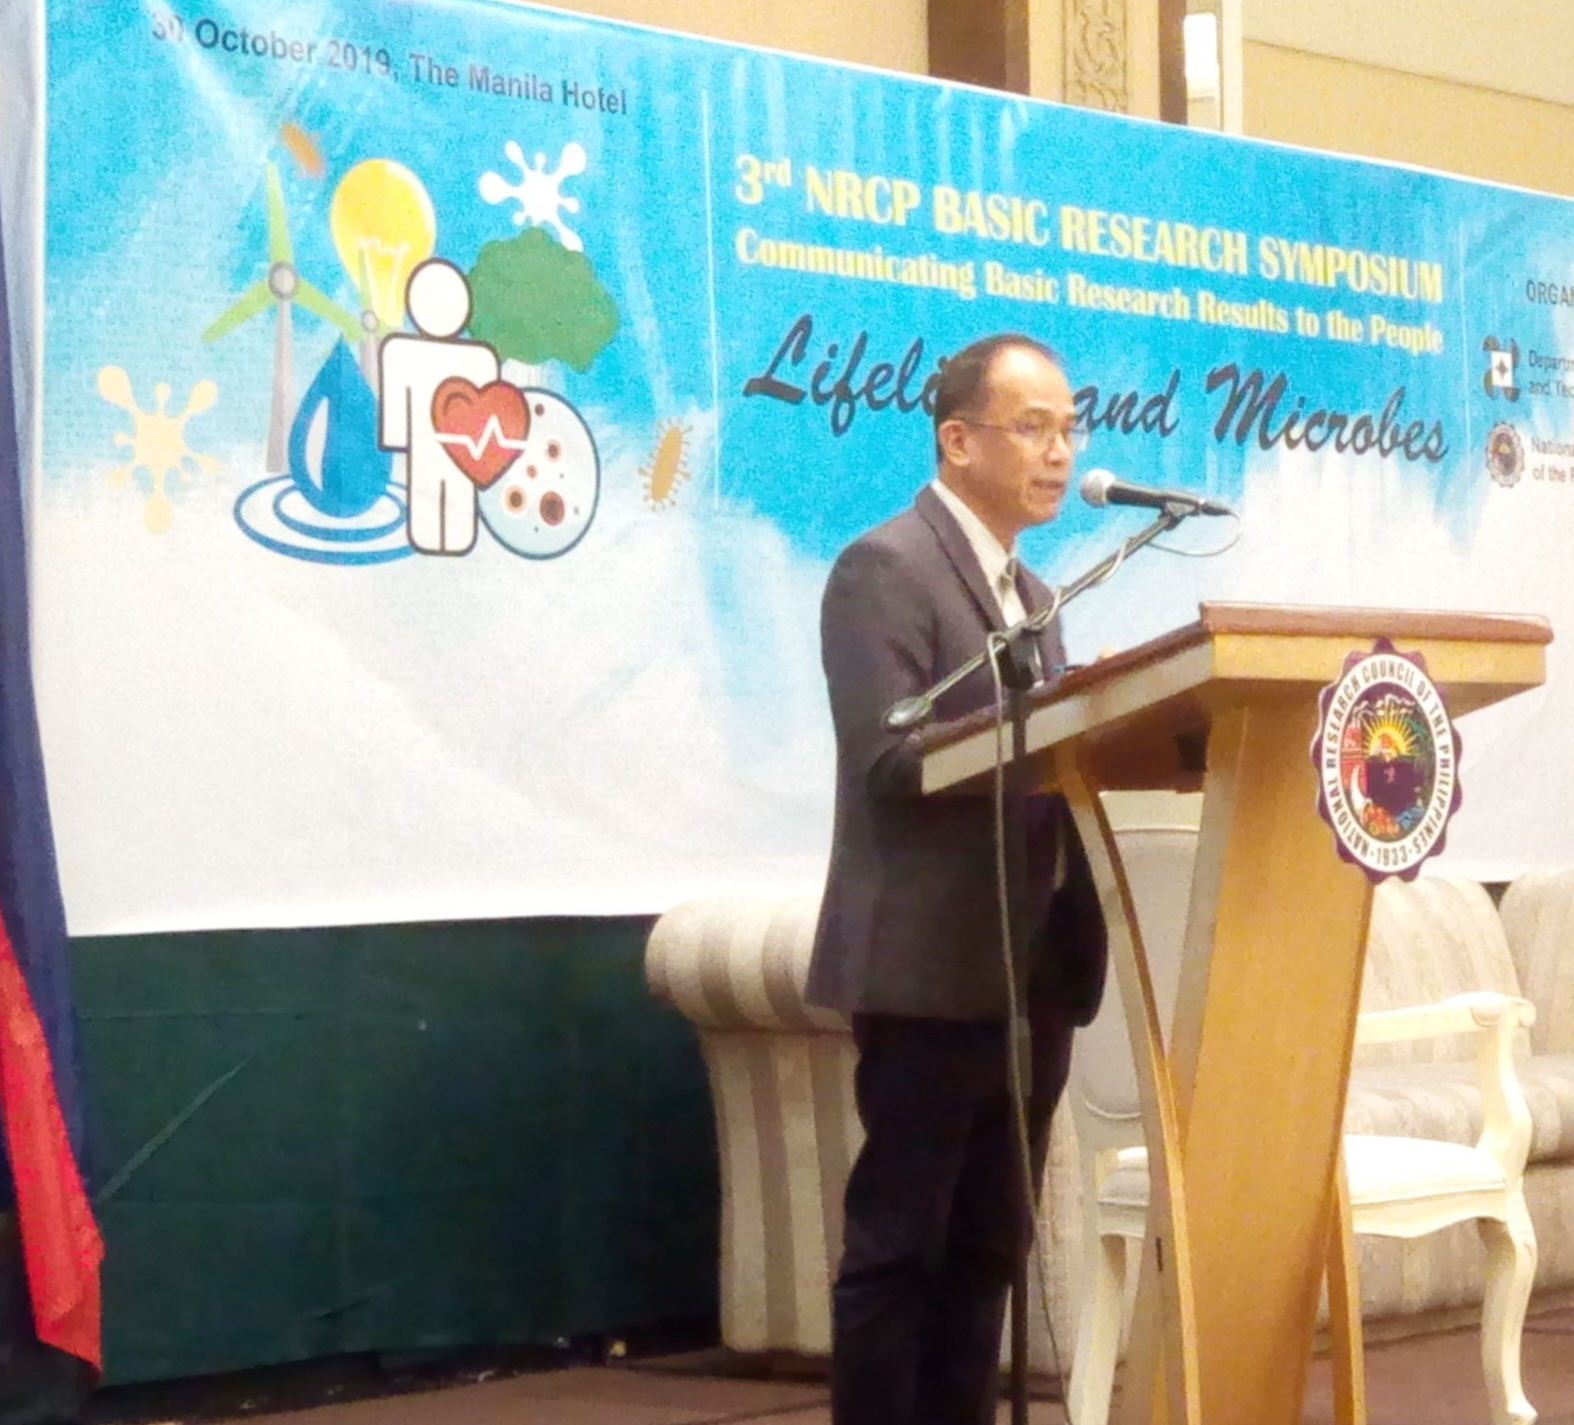 Moreno No Show, Misses Researchers' Company at DOST Event